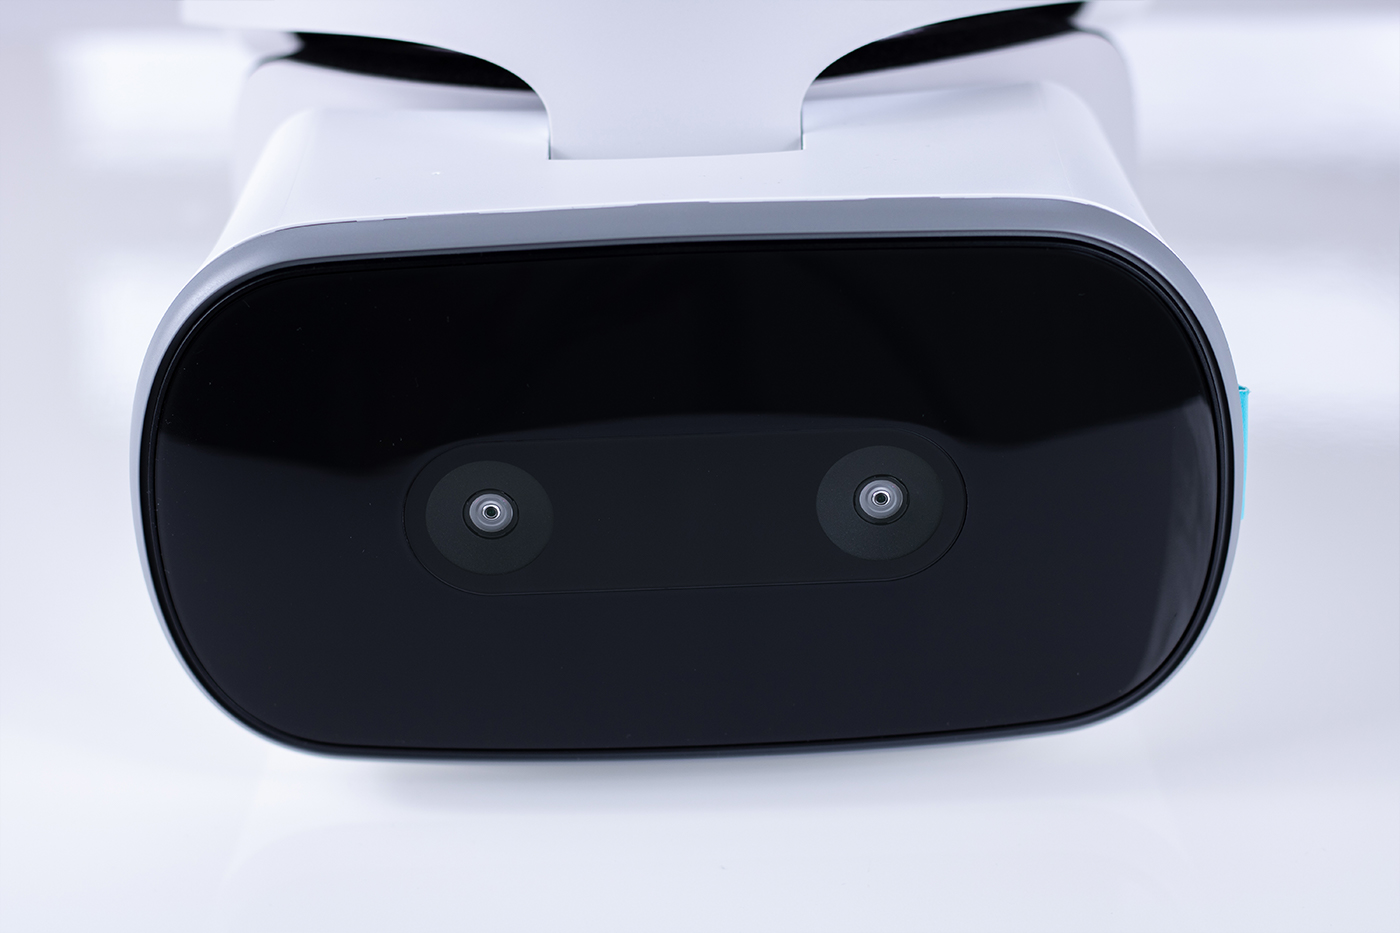 Lenovo Mirage Solo Front View